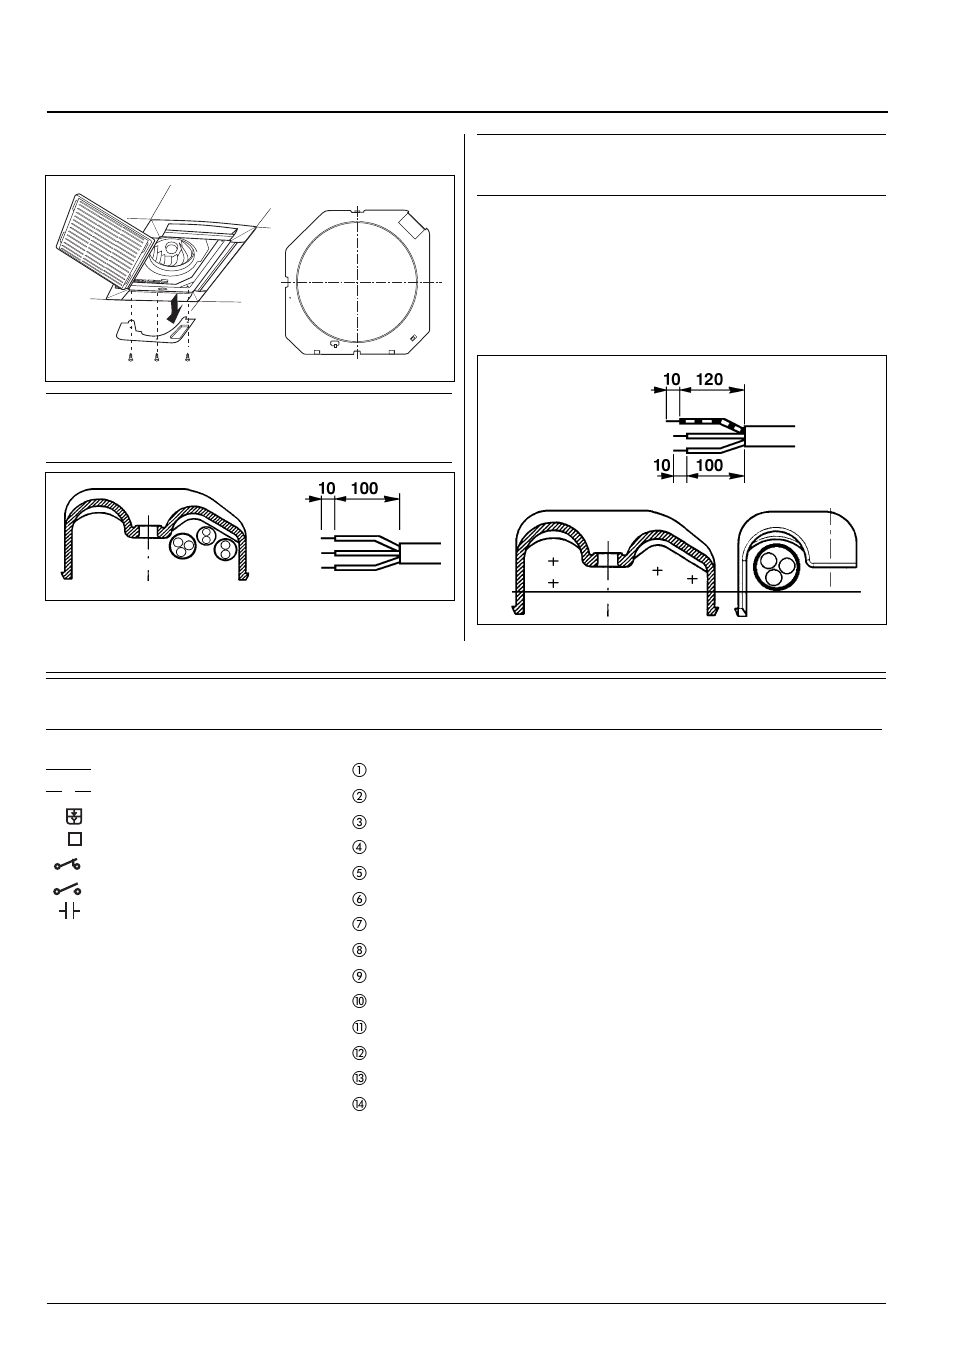 42 gw wiring diagram legend electrical connections. Black Bedroom Furniture Sets. Home Design Ideas